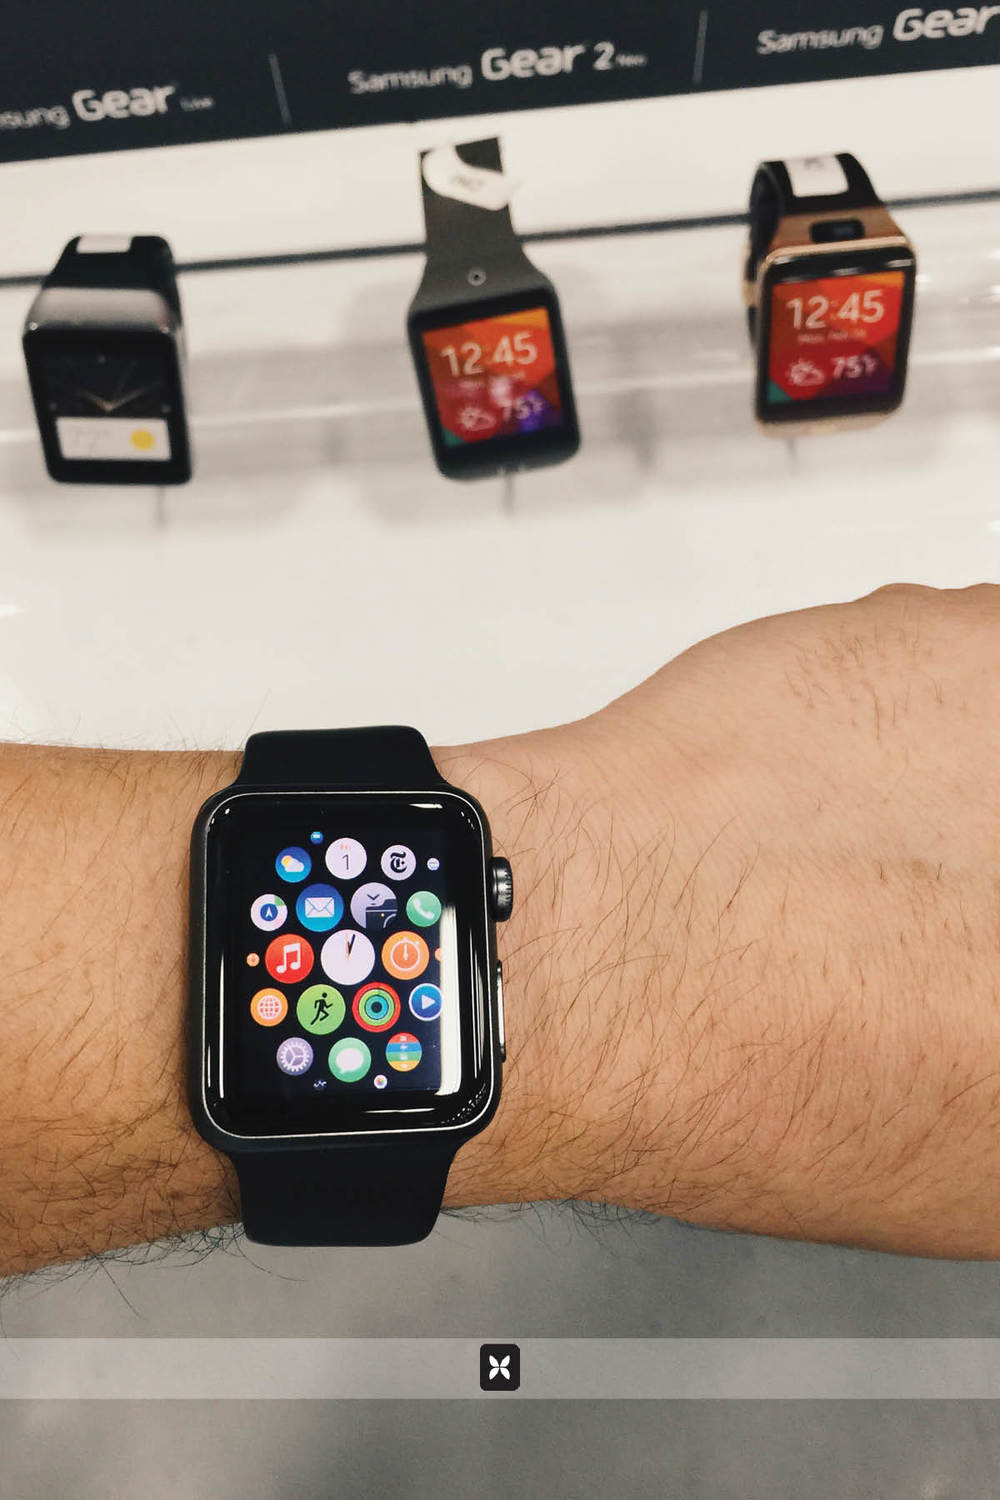 The Apple Watch compared to a few other smart watches.